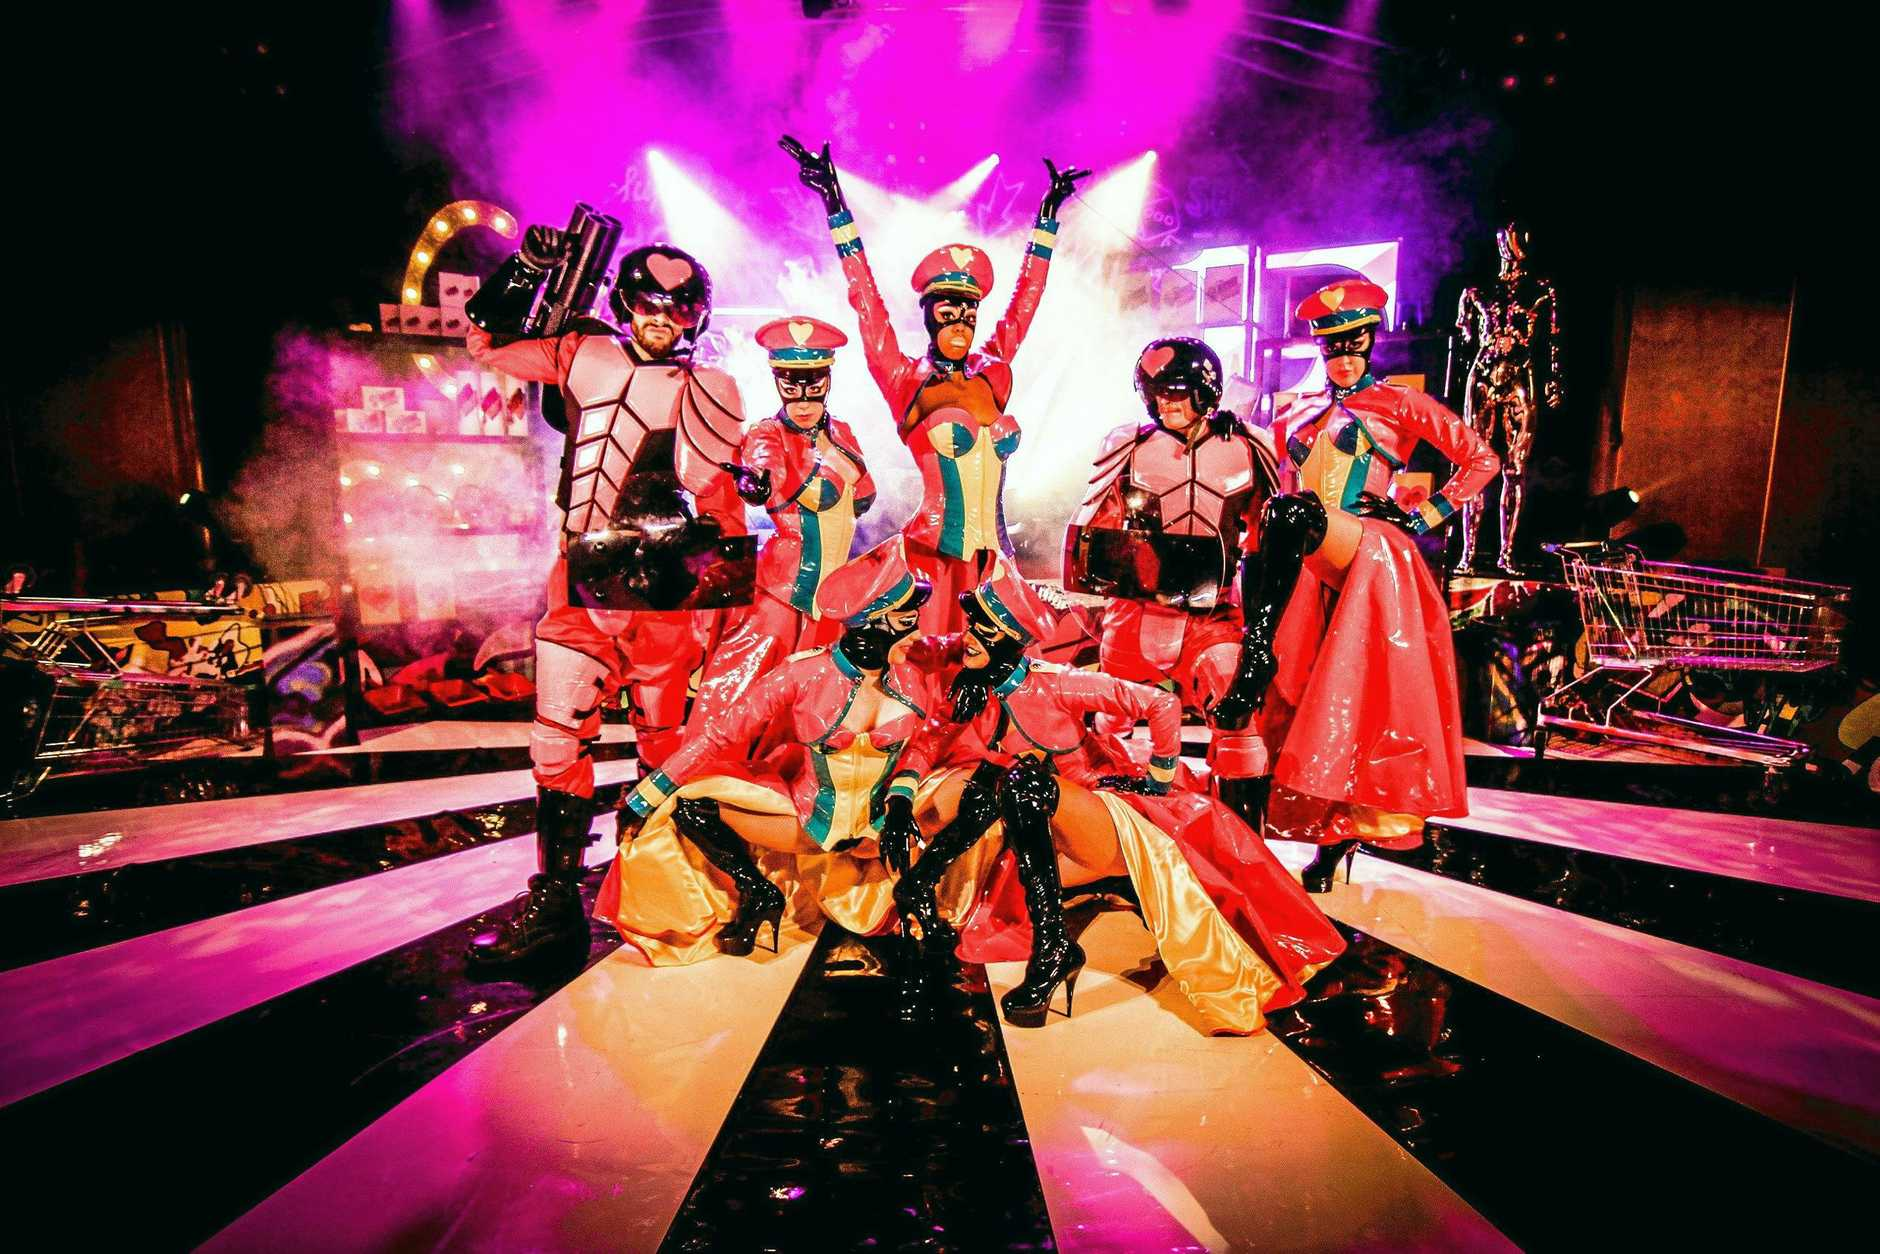 PACIFIC EXPLORER: The Love Riot cabaret isn't for the faint hearted. It was explosive, energetic and very adults-only.